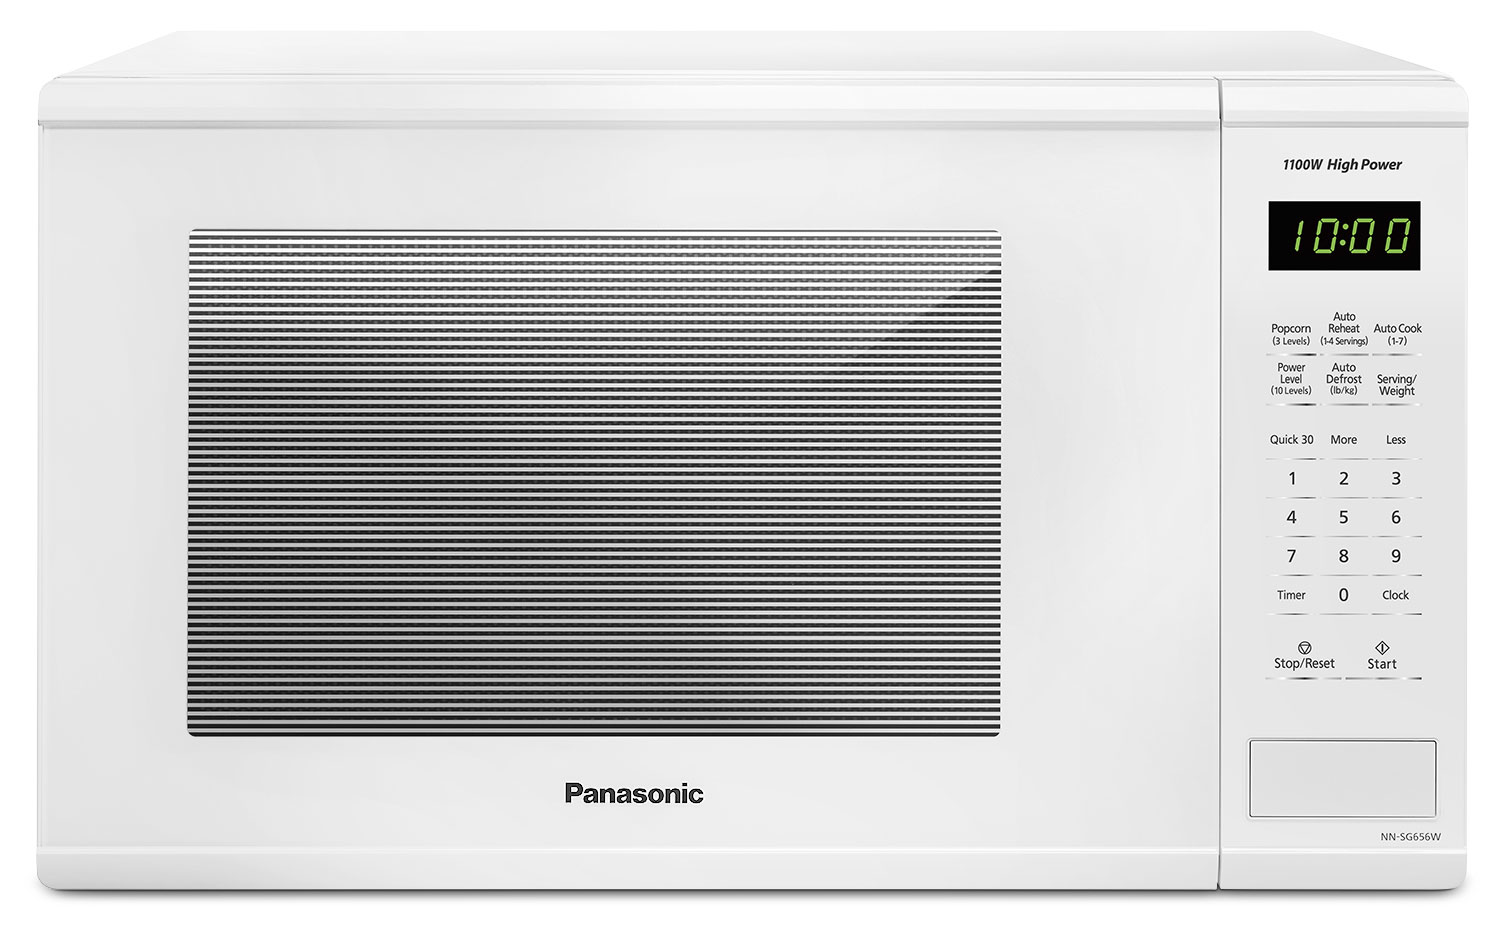 Countertop Microwave White : Panasonic White Countertop Microwave (1.3 Cu. Ft.) - NNSG656W Leons